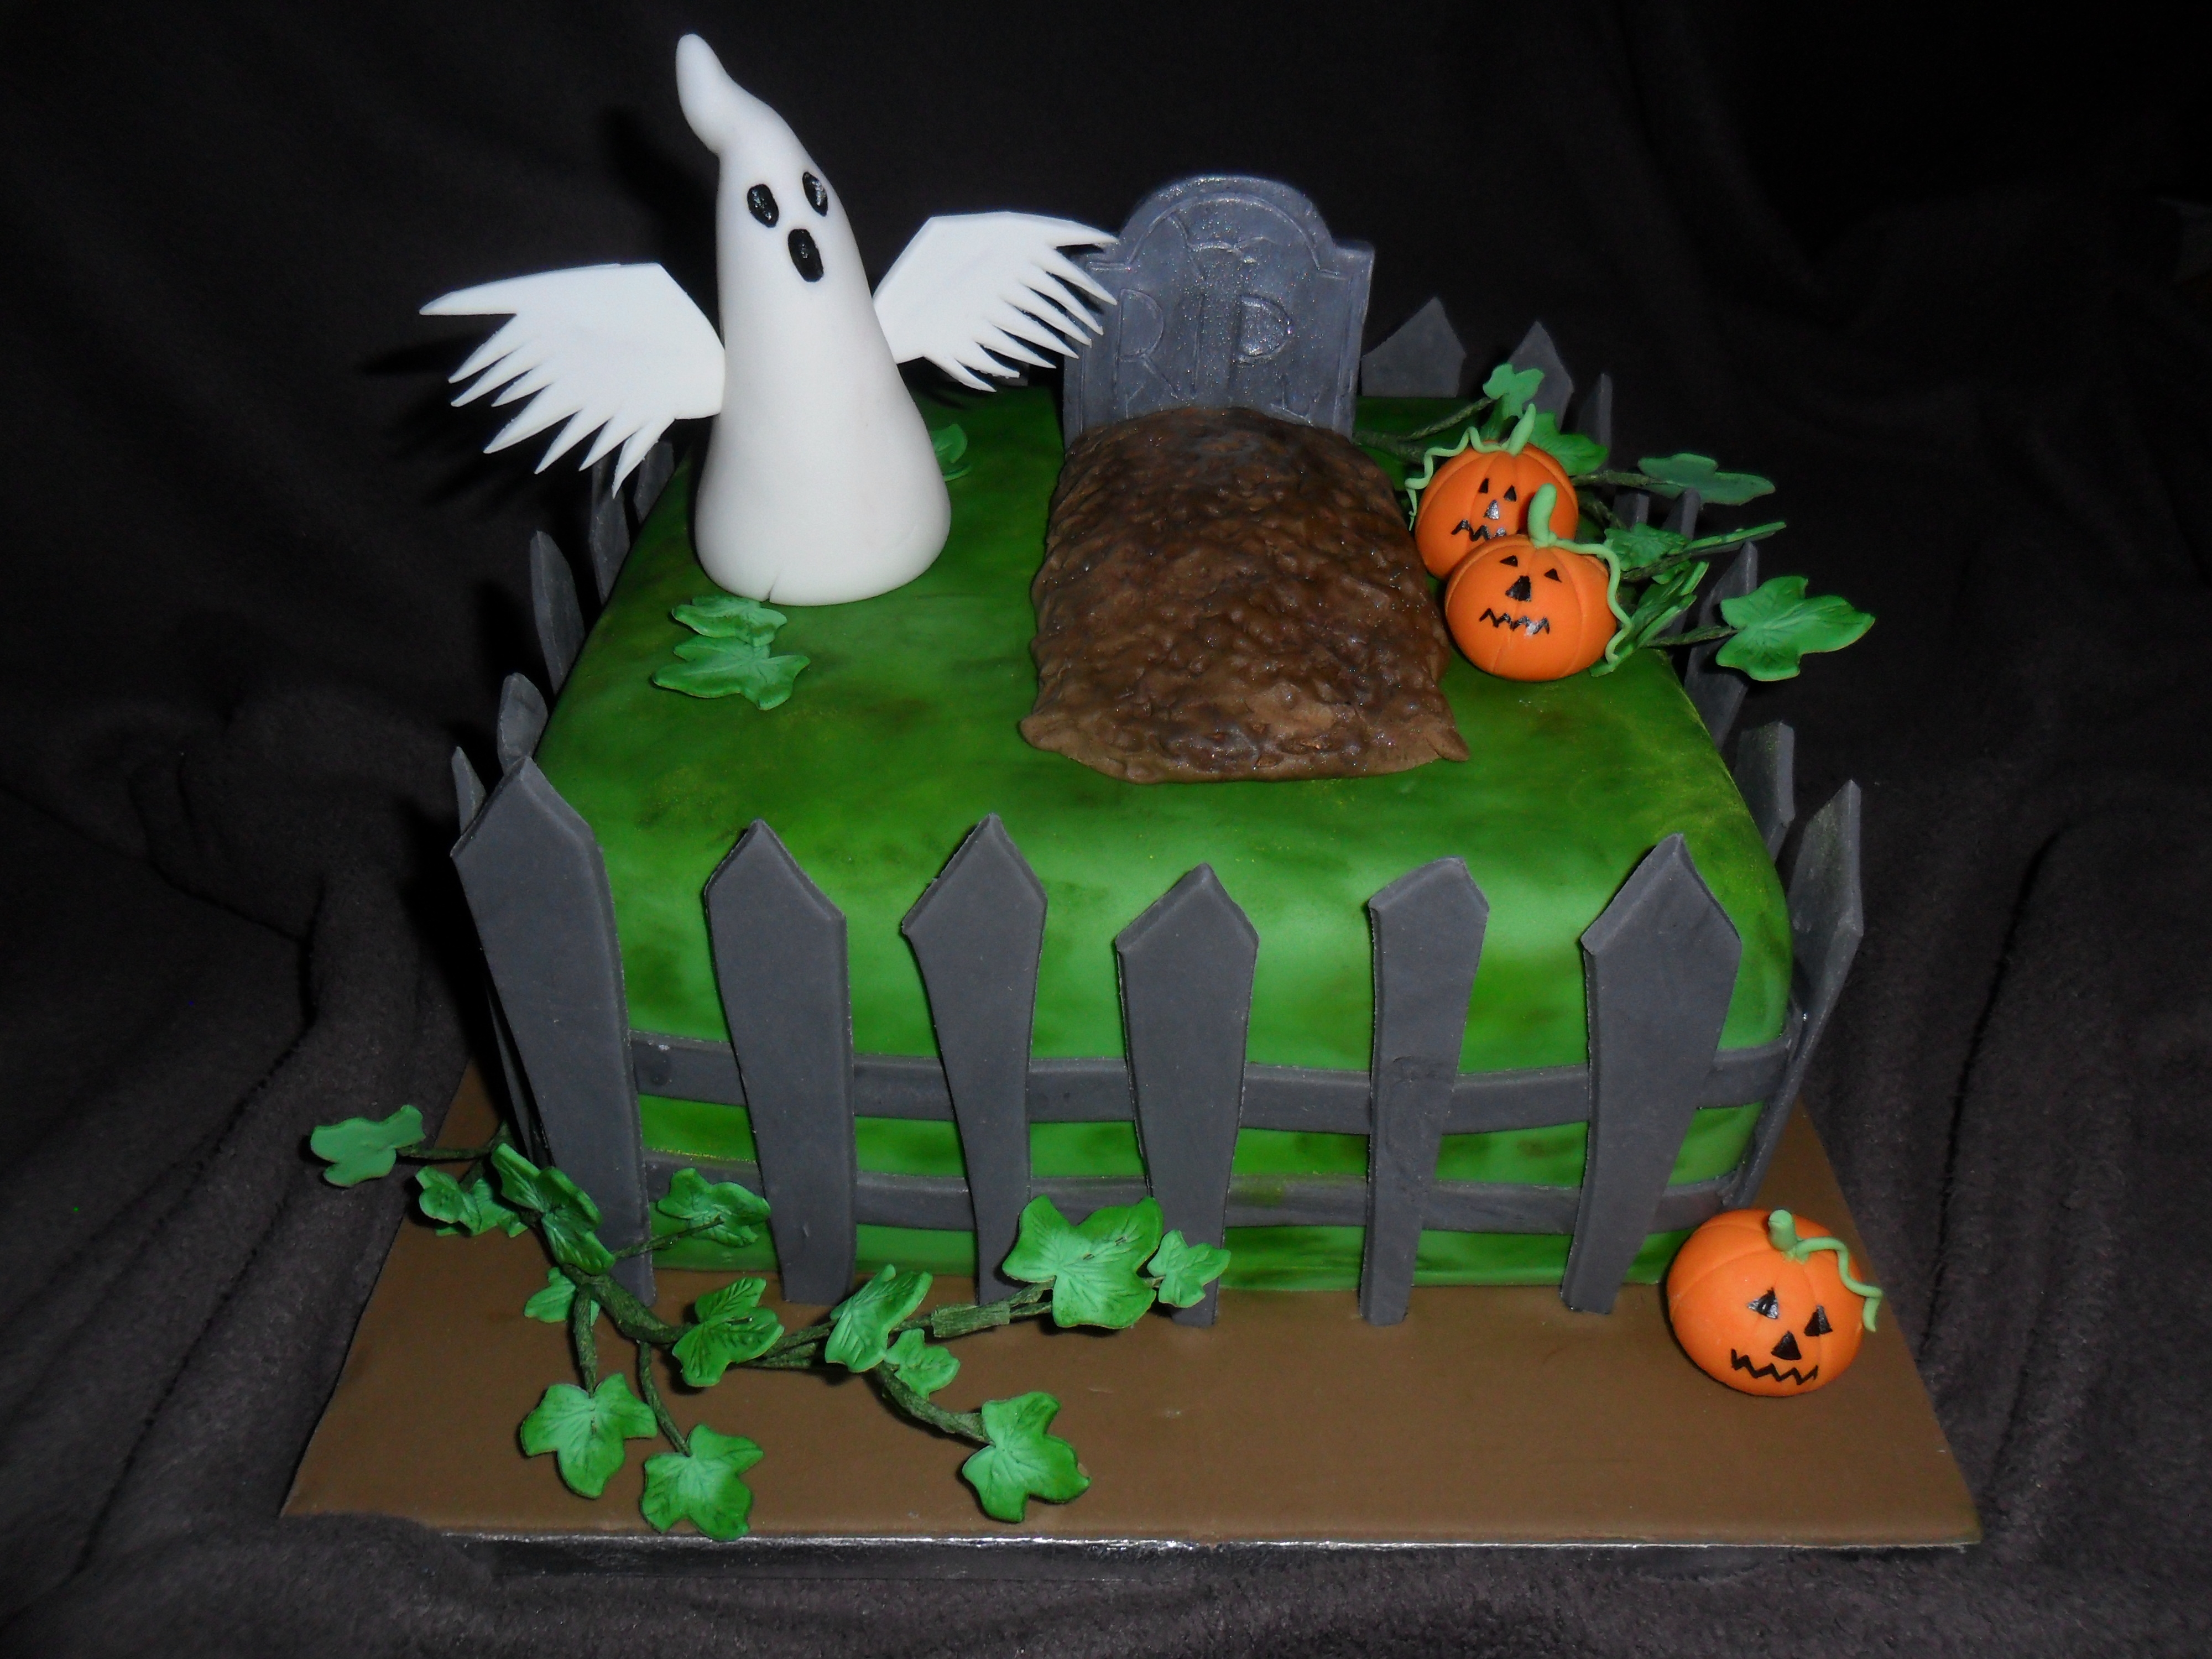 Halloween Graveyard And Edible Ghost Birthday Cake